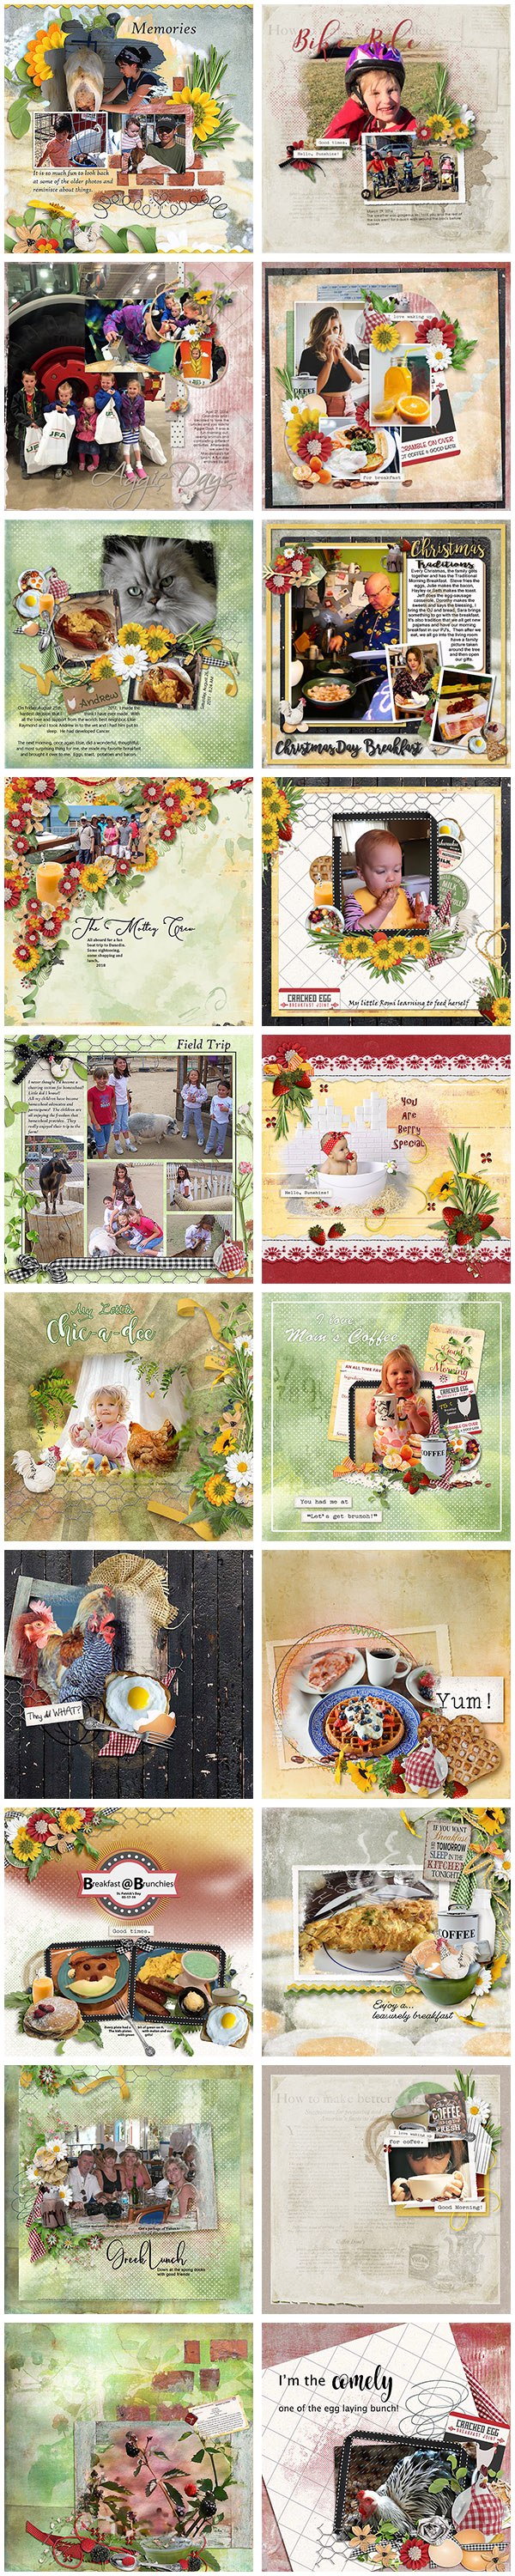 Cracked Egg by Snickerdoodle Designs Layouts